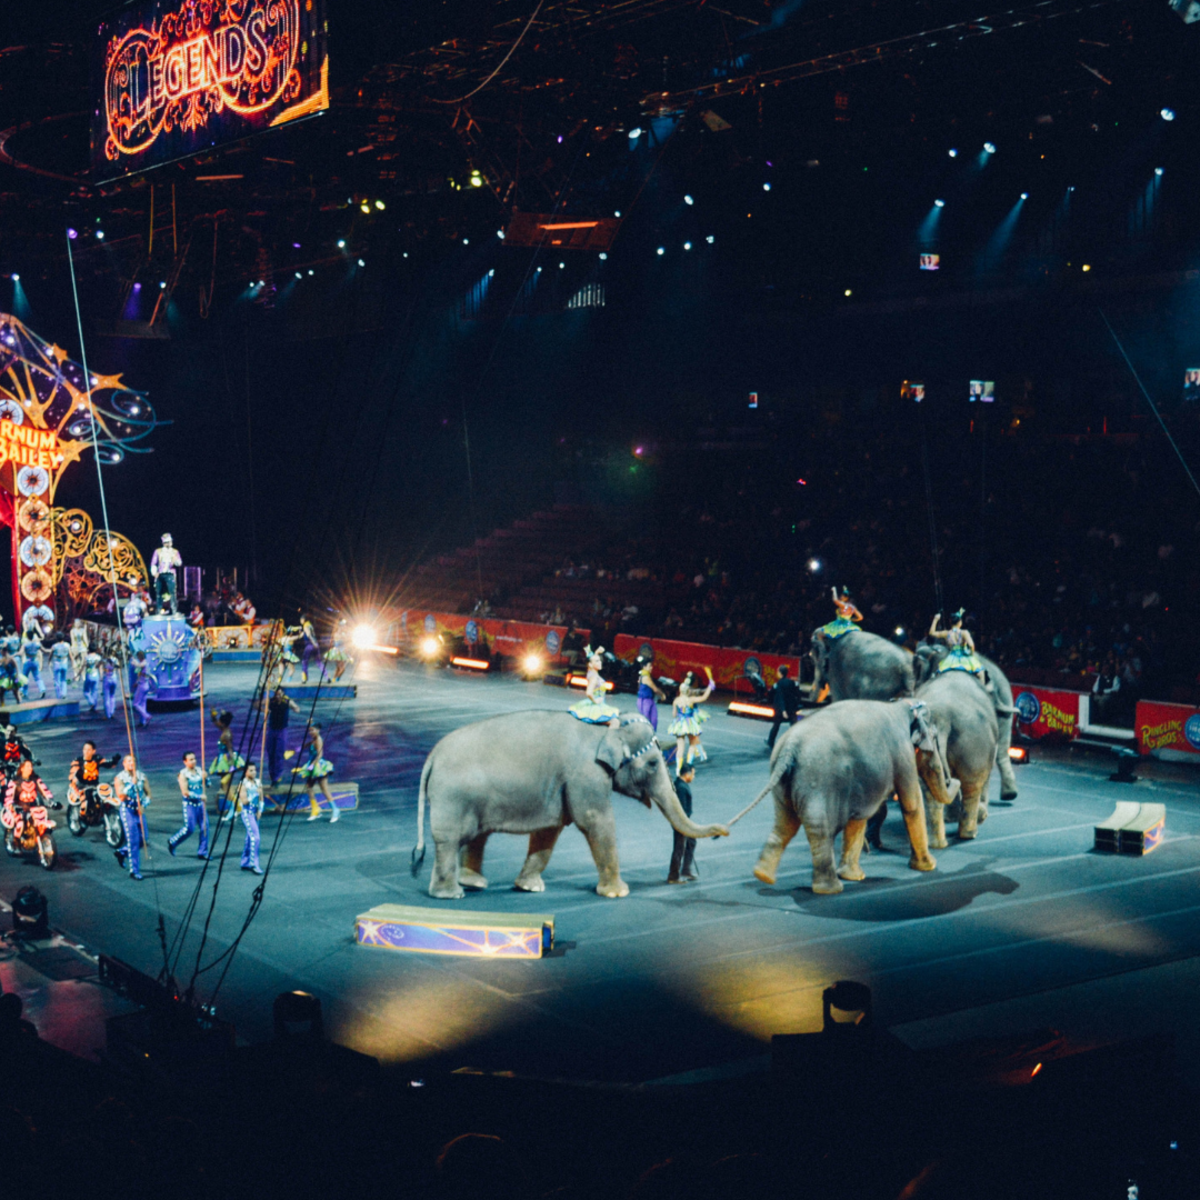 Circuses violate many animal rights.